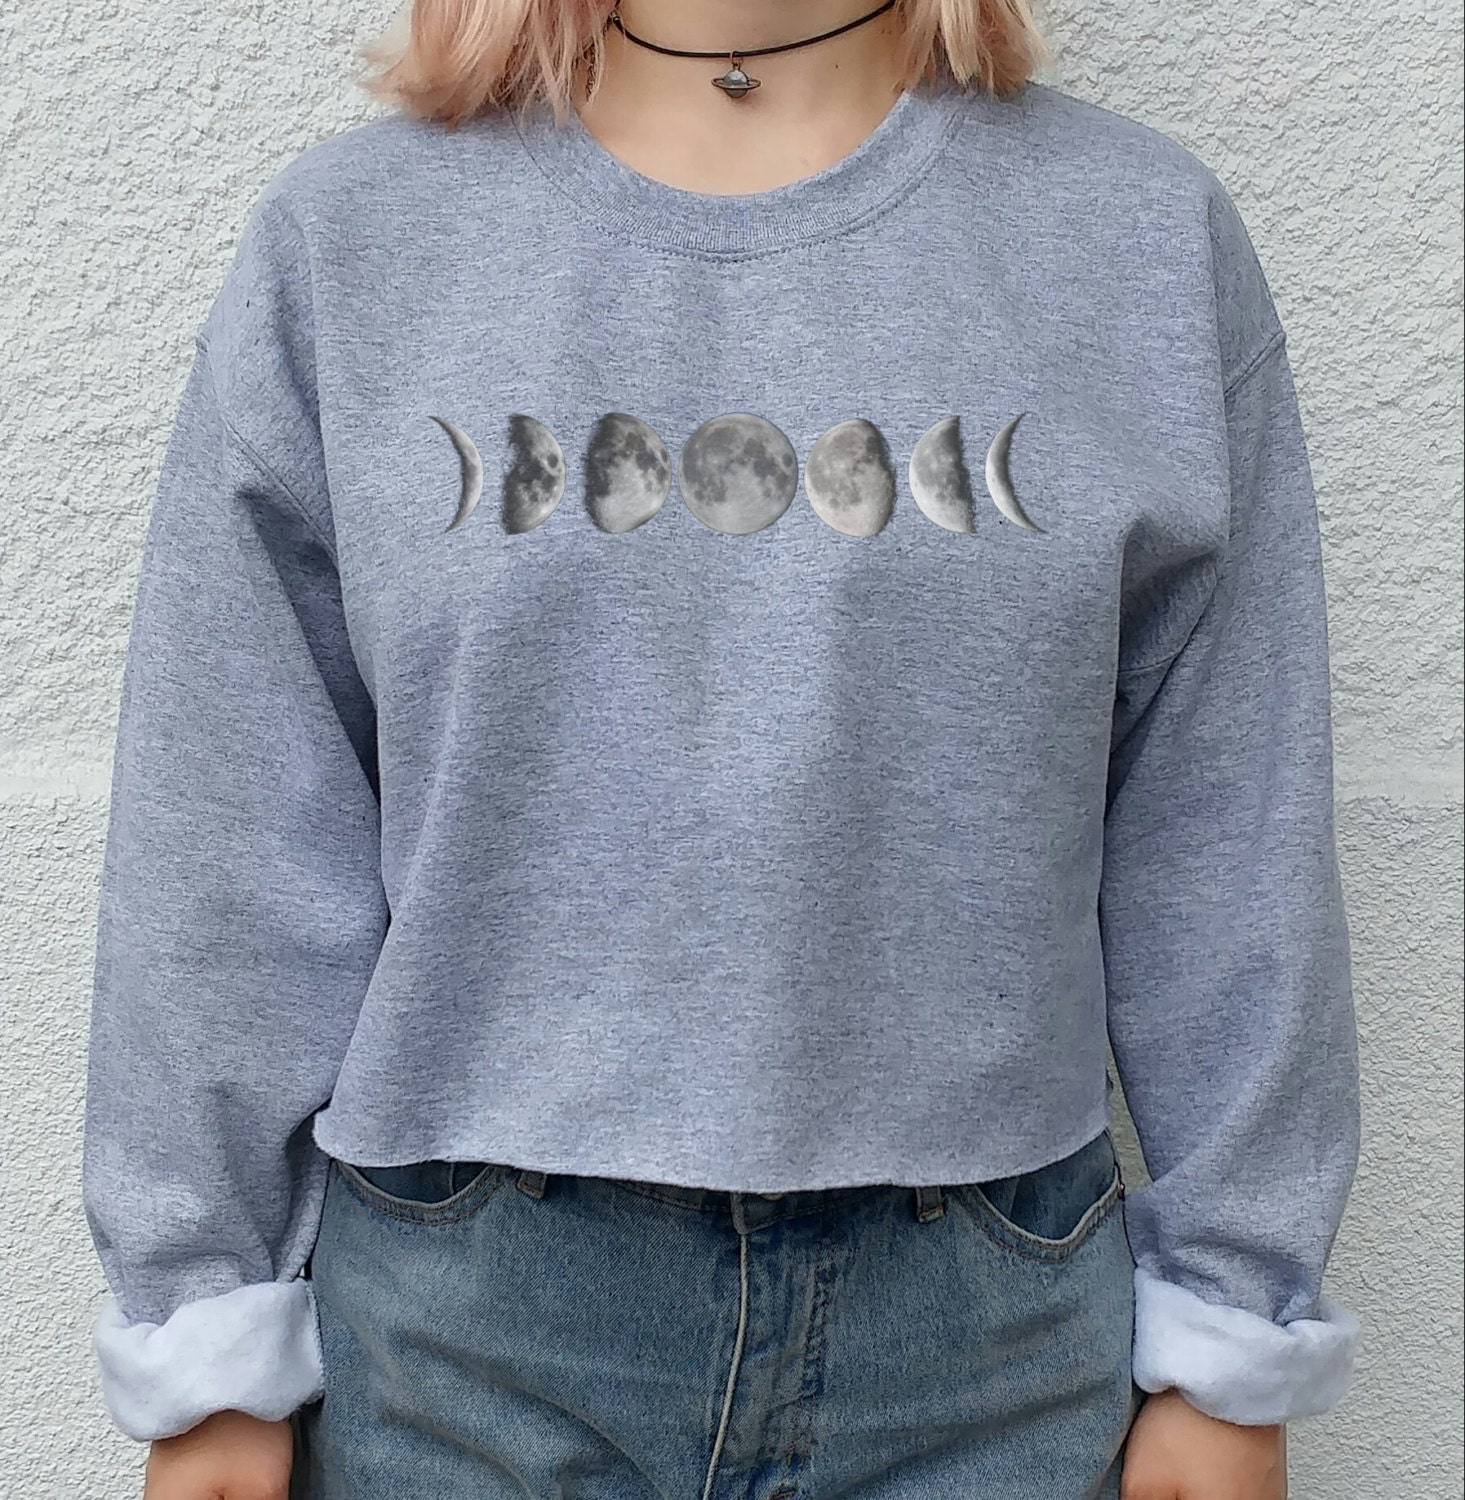 Moon Phase Tumbl Sweater, grunge, indie, hipster blogger